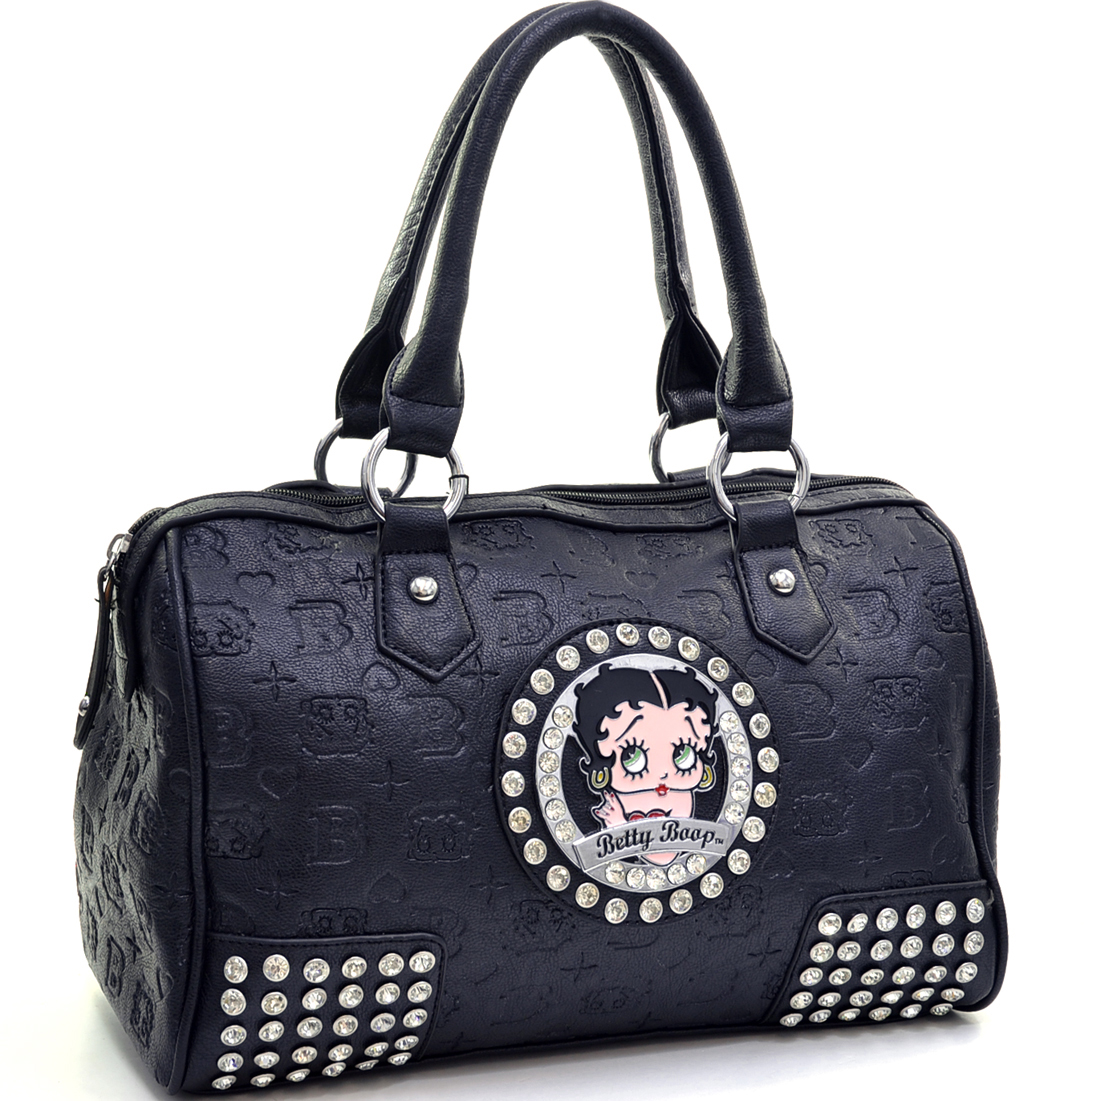 Classic Betty Boop® Satchel Bag with Embossed Logo & Rhinestone Accents